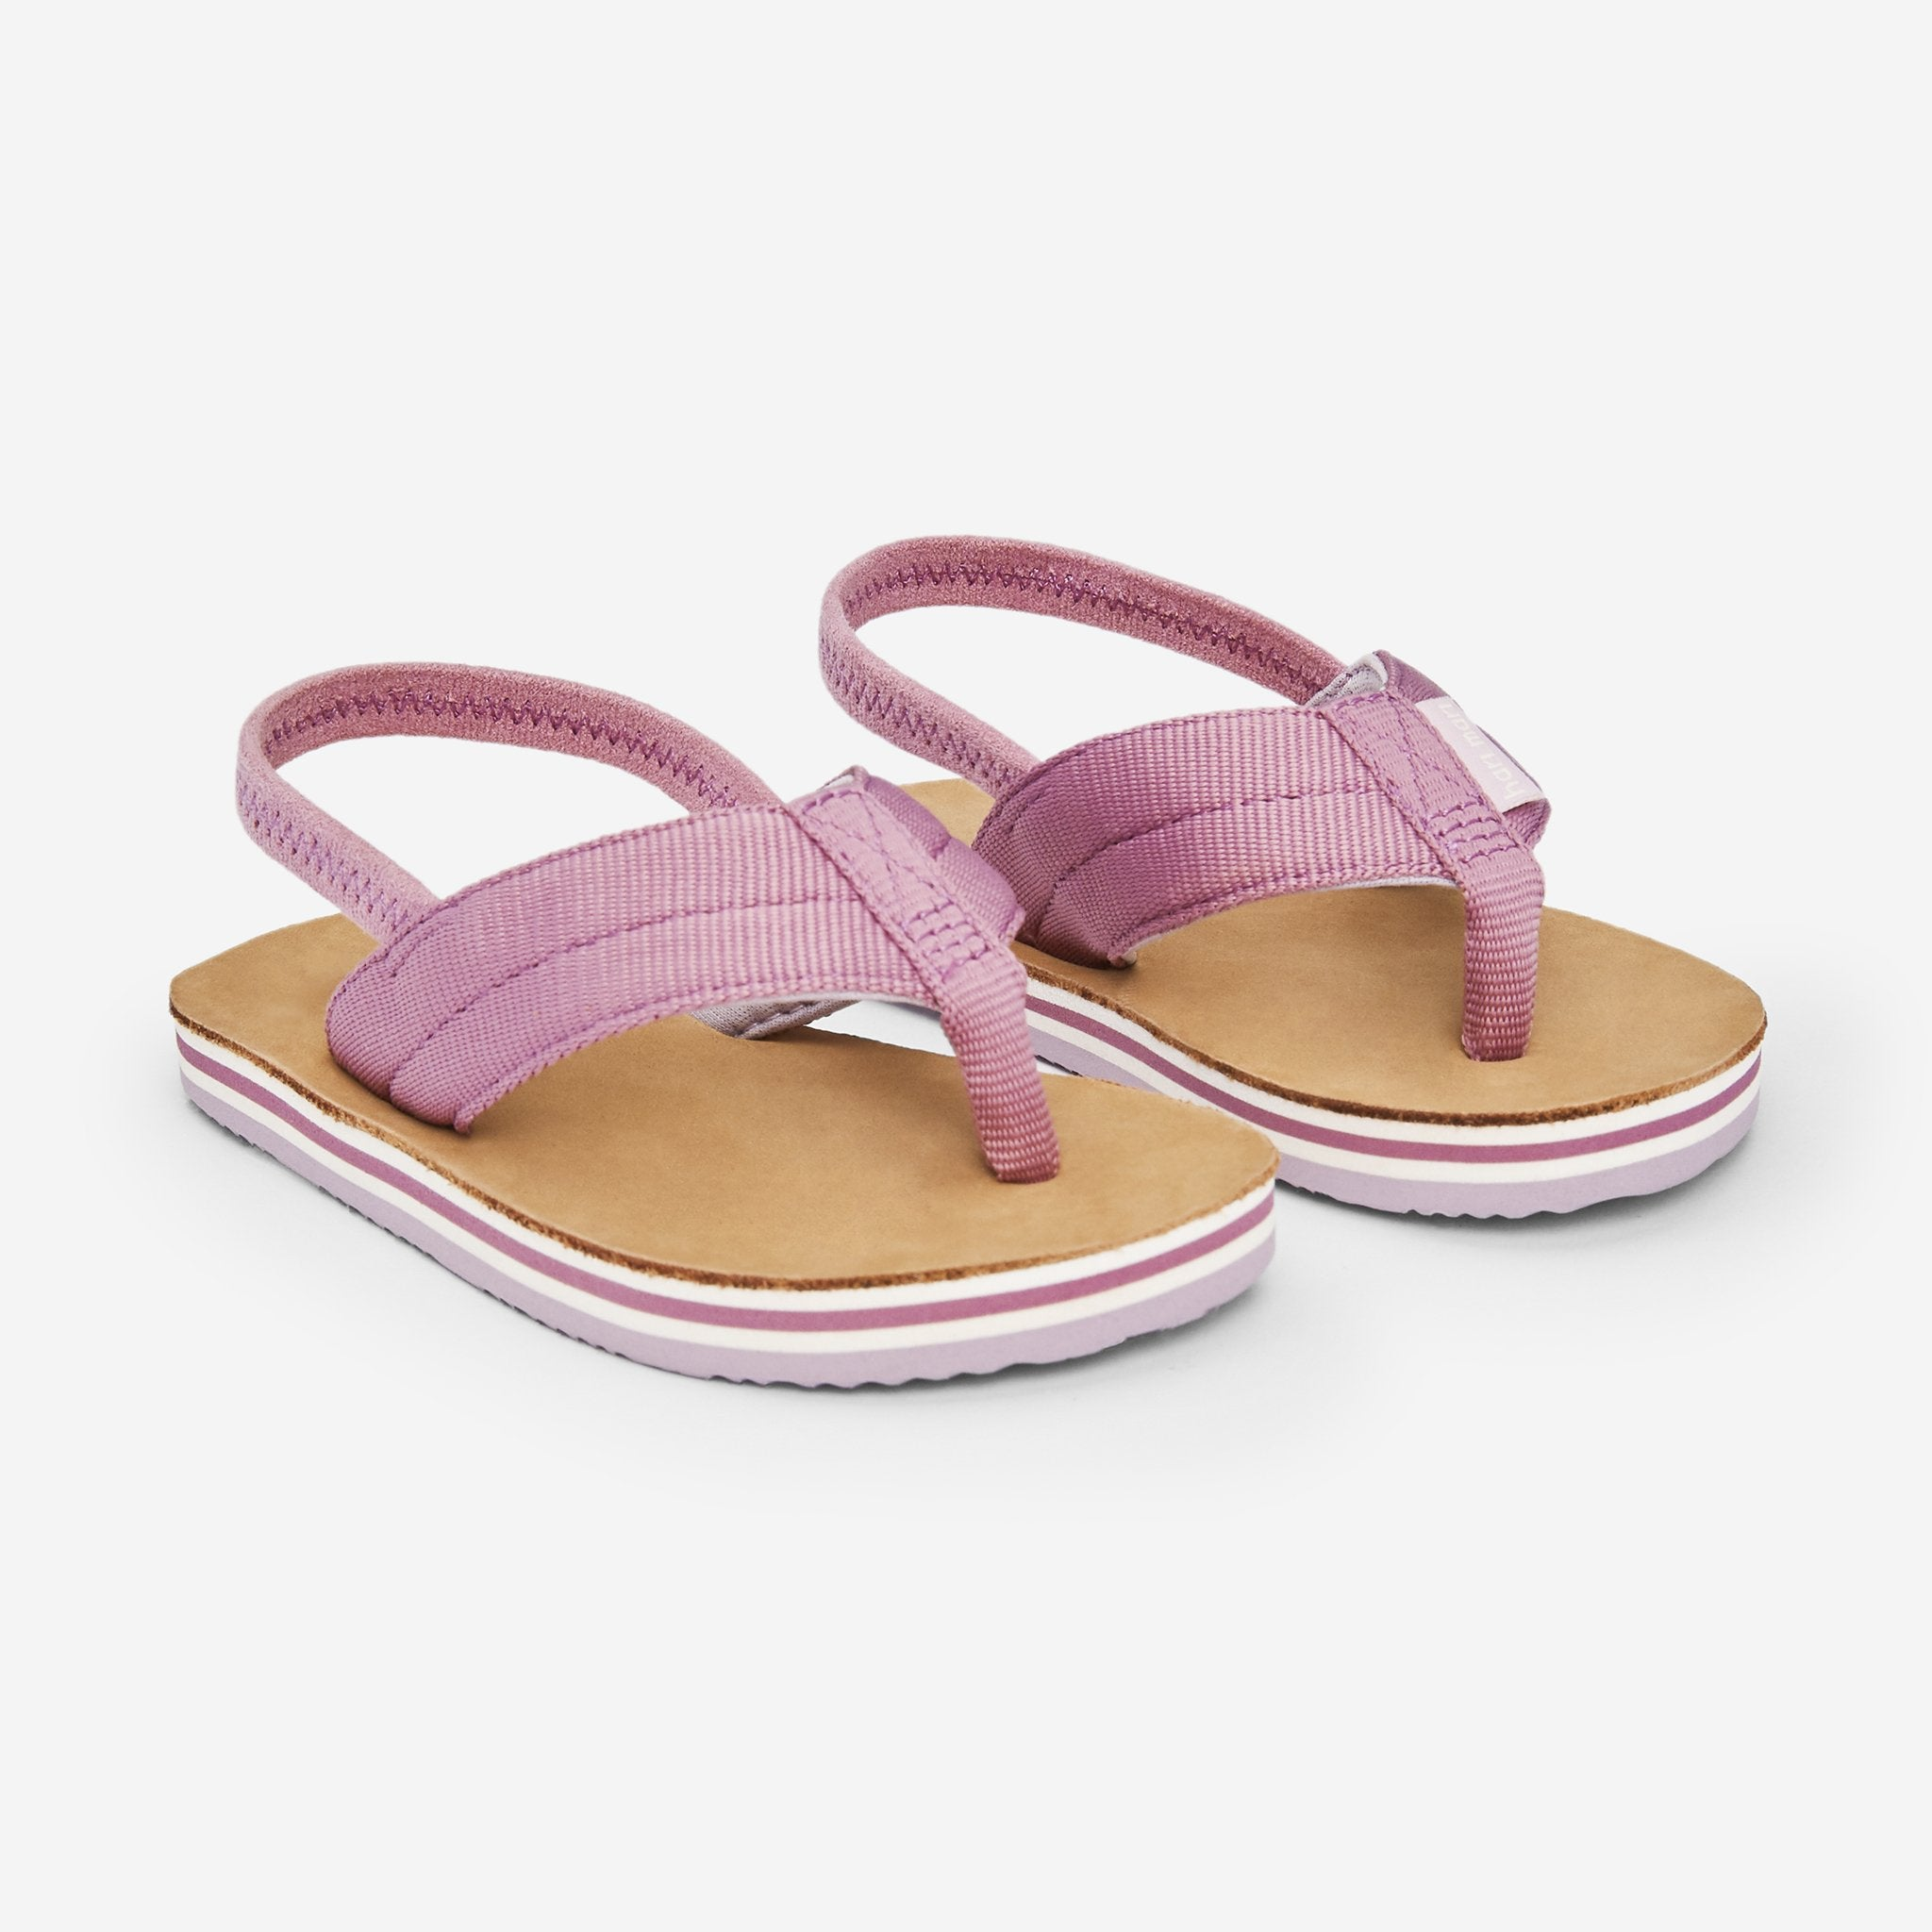 Scout Sandals - Rose/Sand - Kids